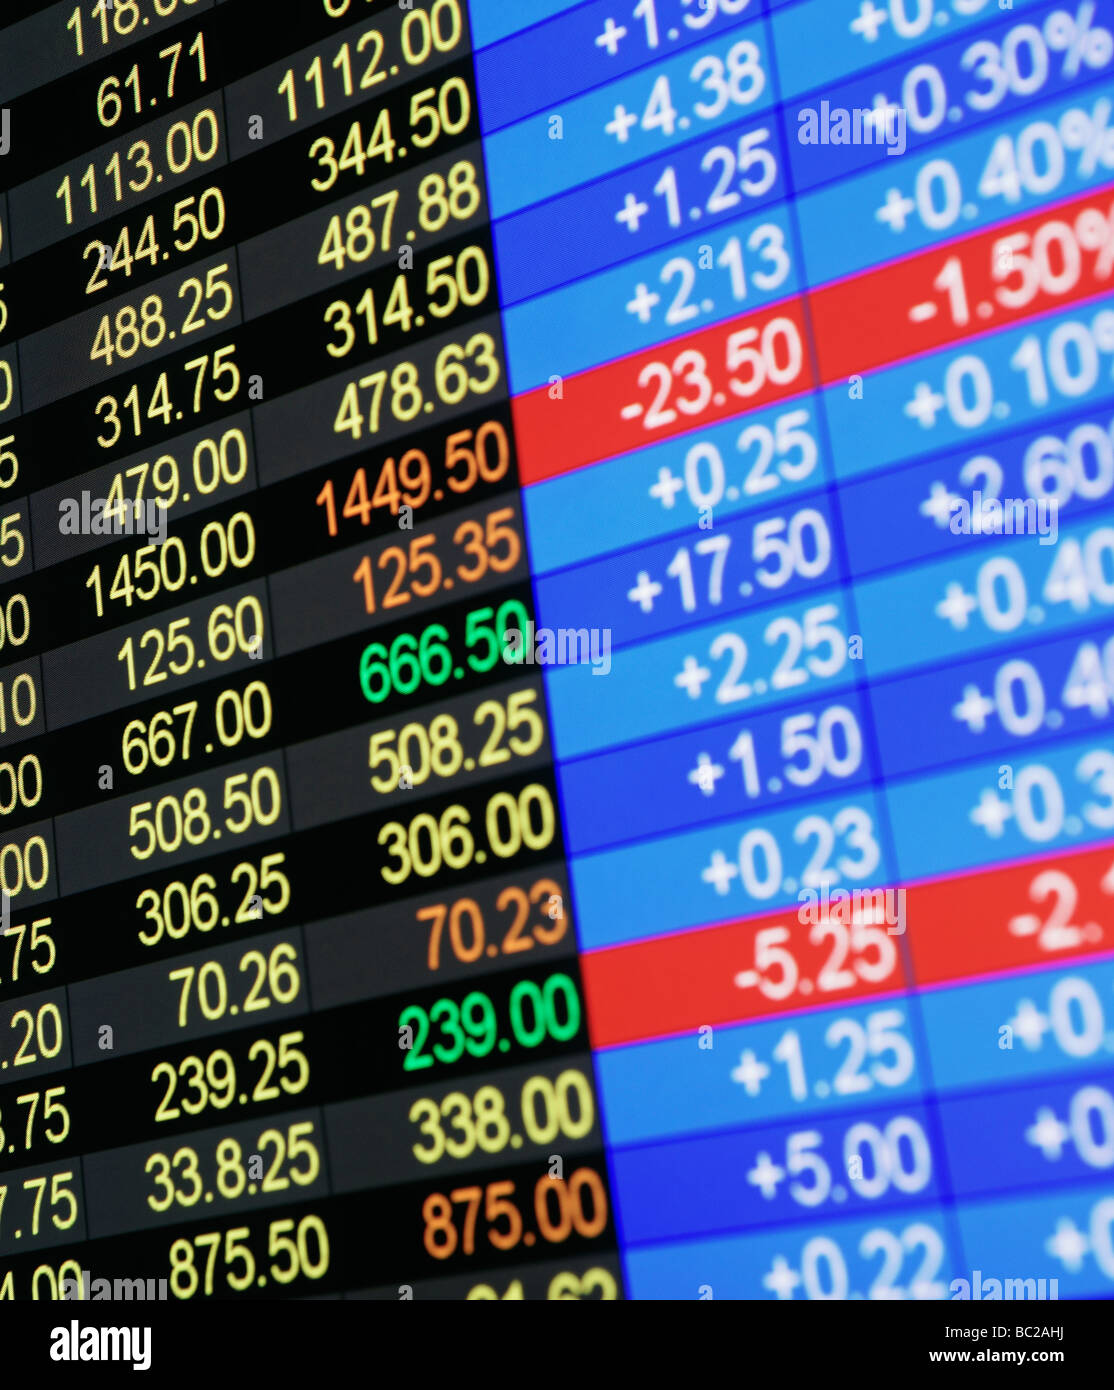 Stock Market Price Quotes Display - Stock Image